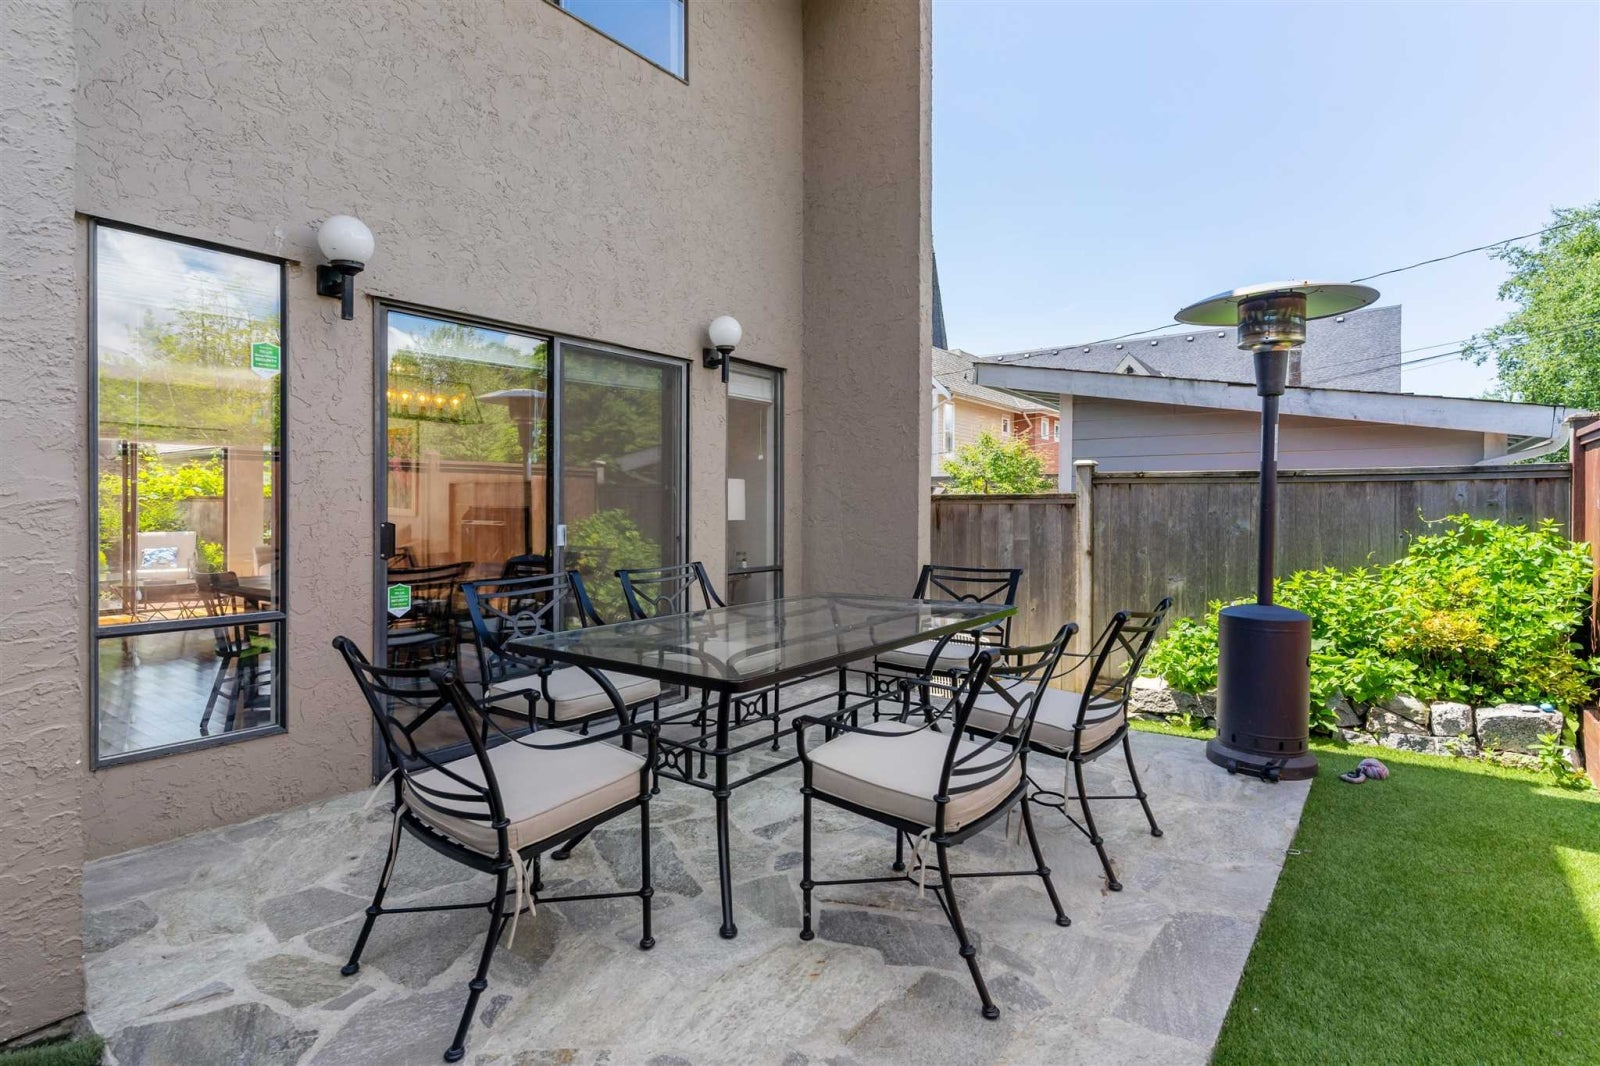 4 226 E 10TH STREET - Central Lonsdale Townhouse for sale, 3 Bedrooms (R2596161) #14